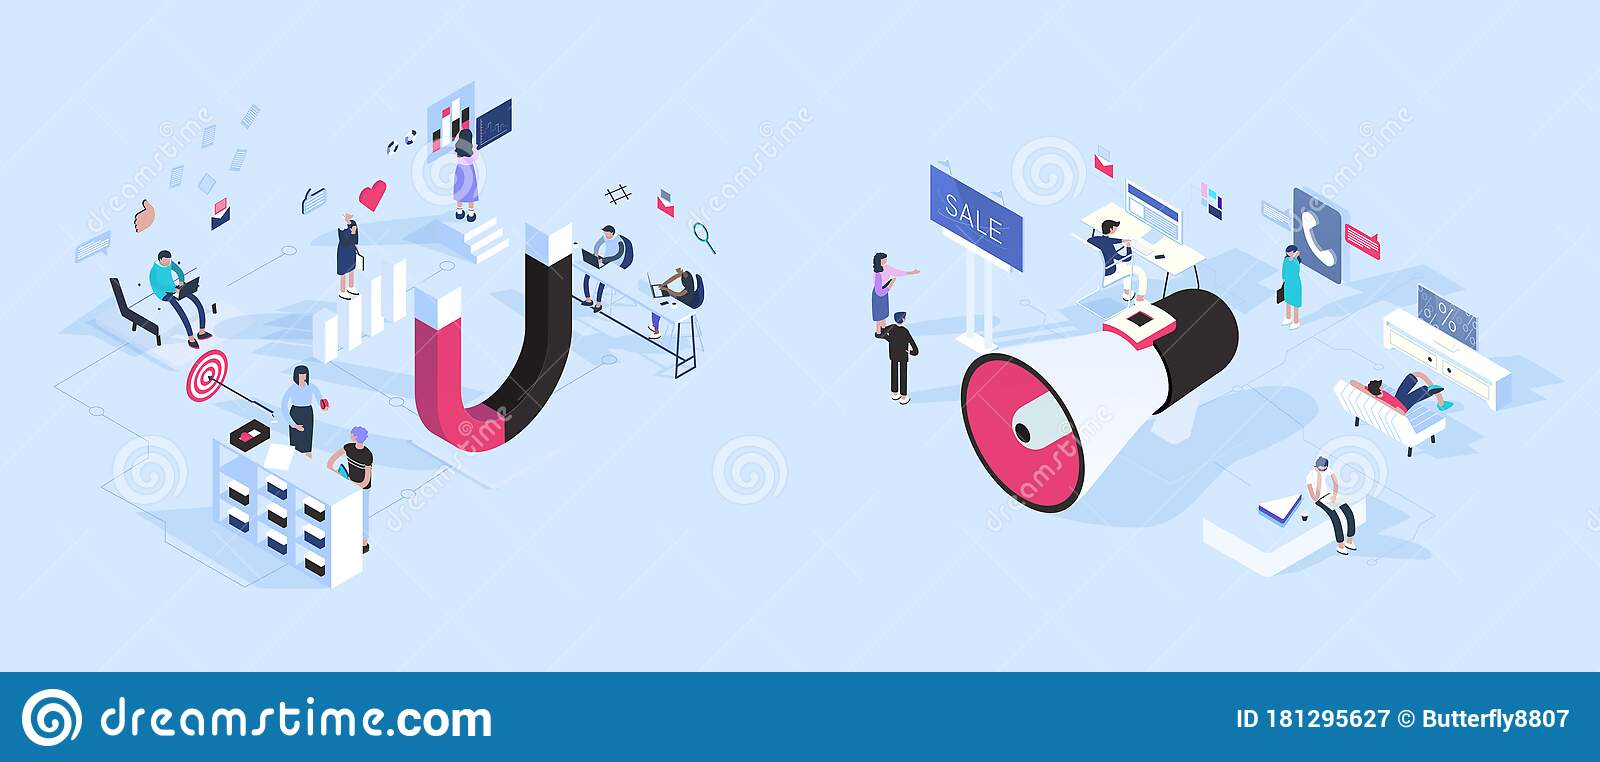 inbound vs outbound marketing concept vector illustration stock vector illustration of advertising post 181295627 inbound vs outbound marketing concept vector illustration stock vector illustration of advertising post 181295627